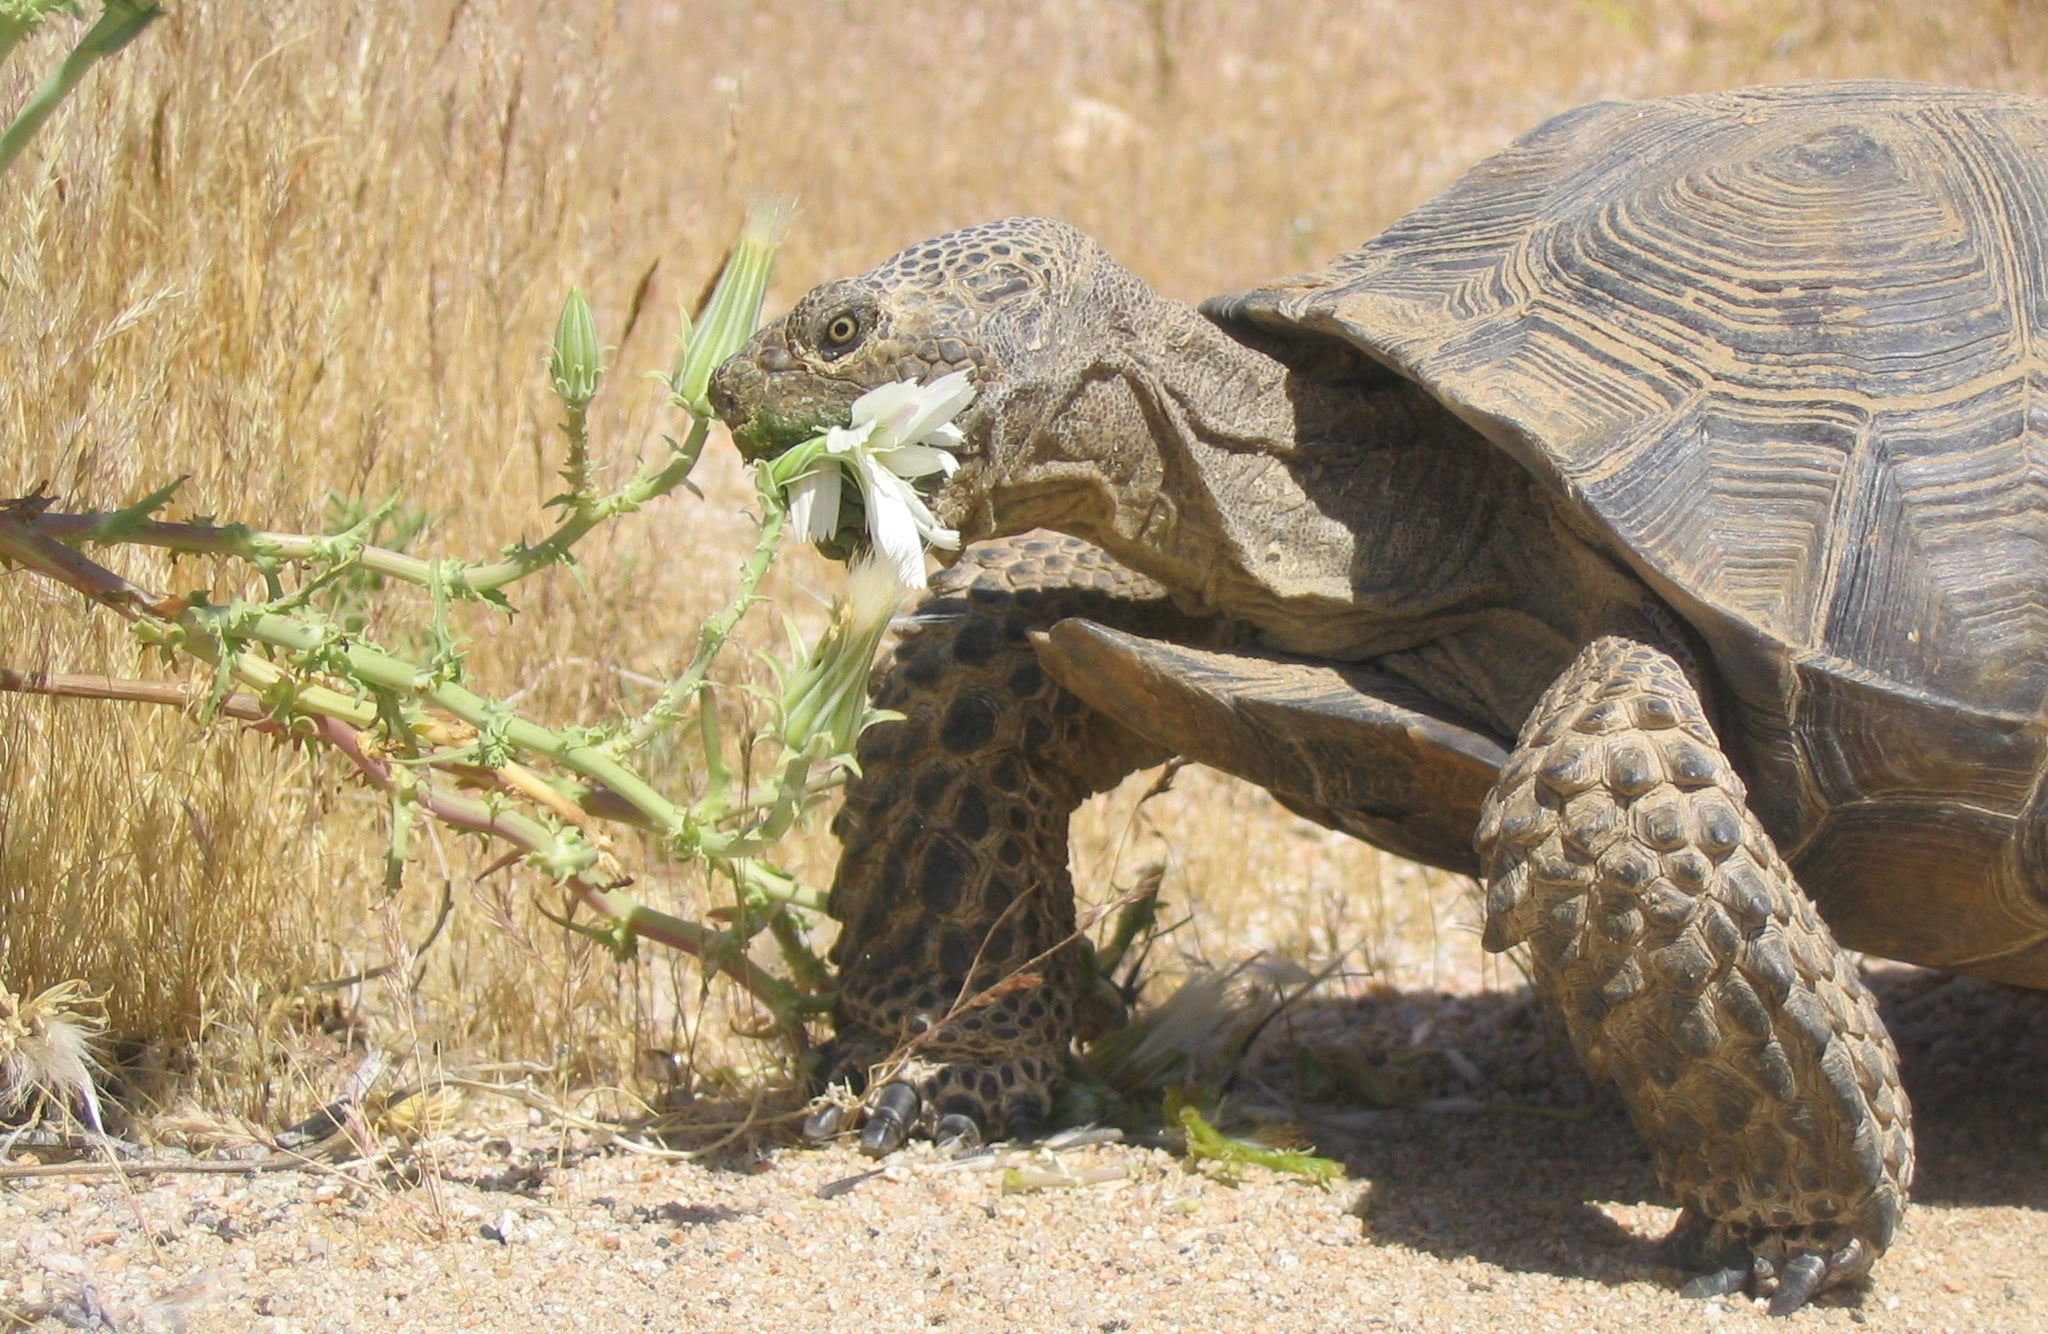 Male Tortoises Mysteriously Stop Boning